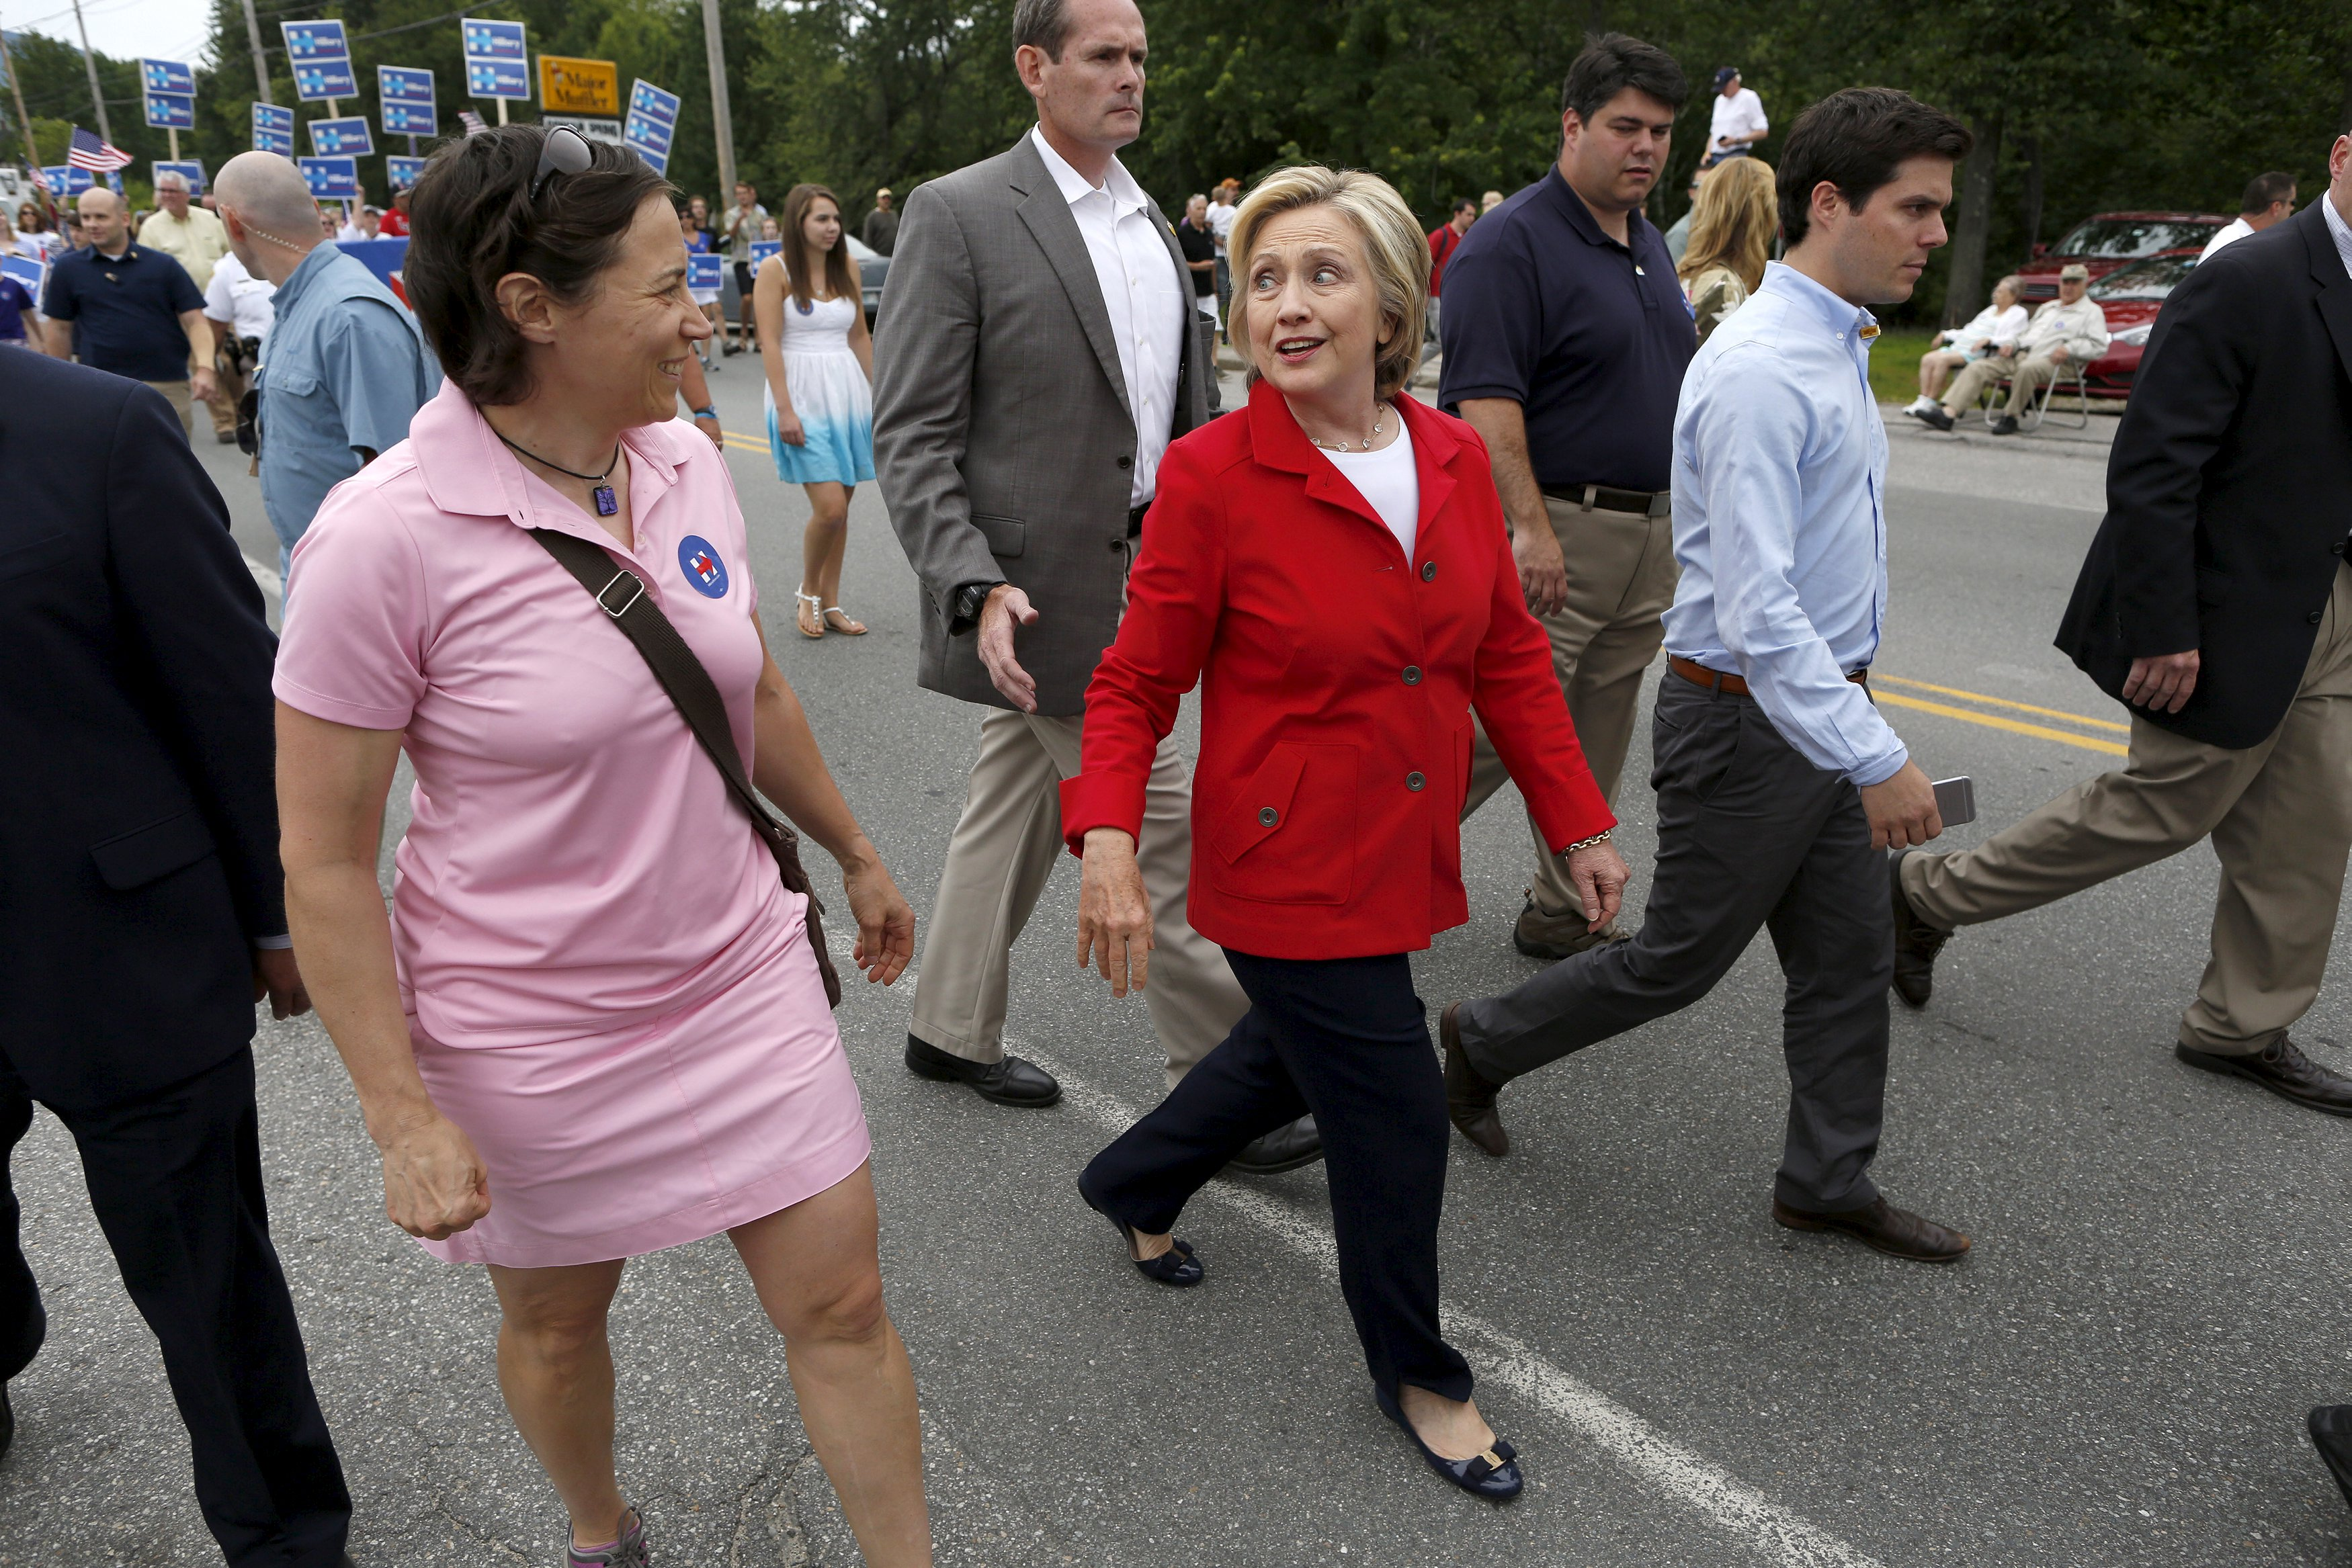 4 lessons from Hillary Clinton's New Hampshire trip